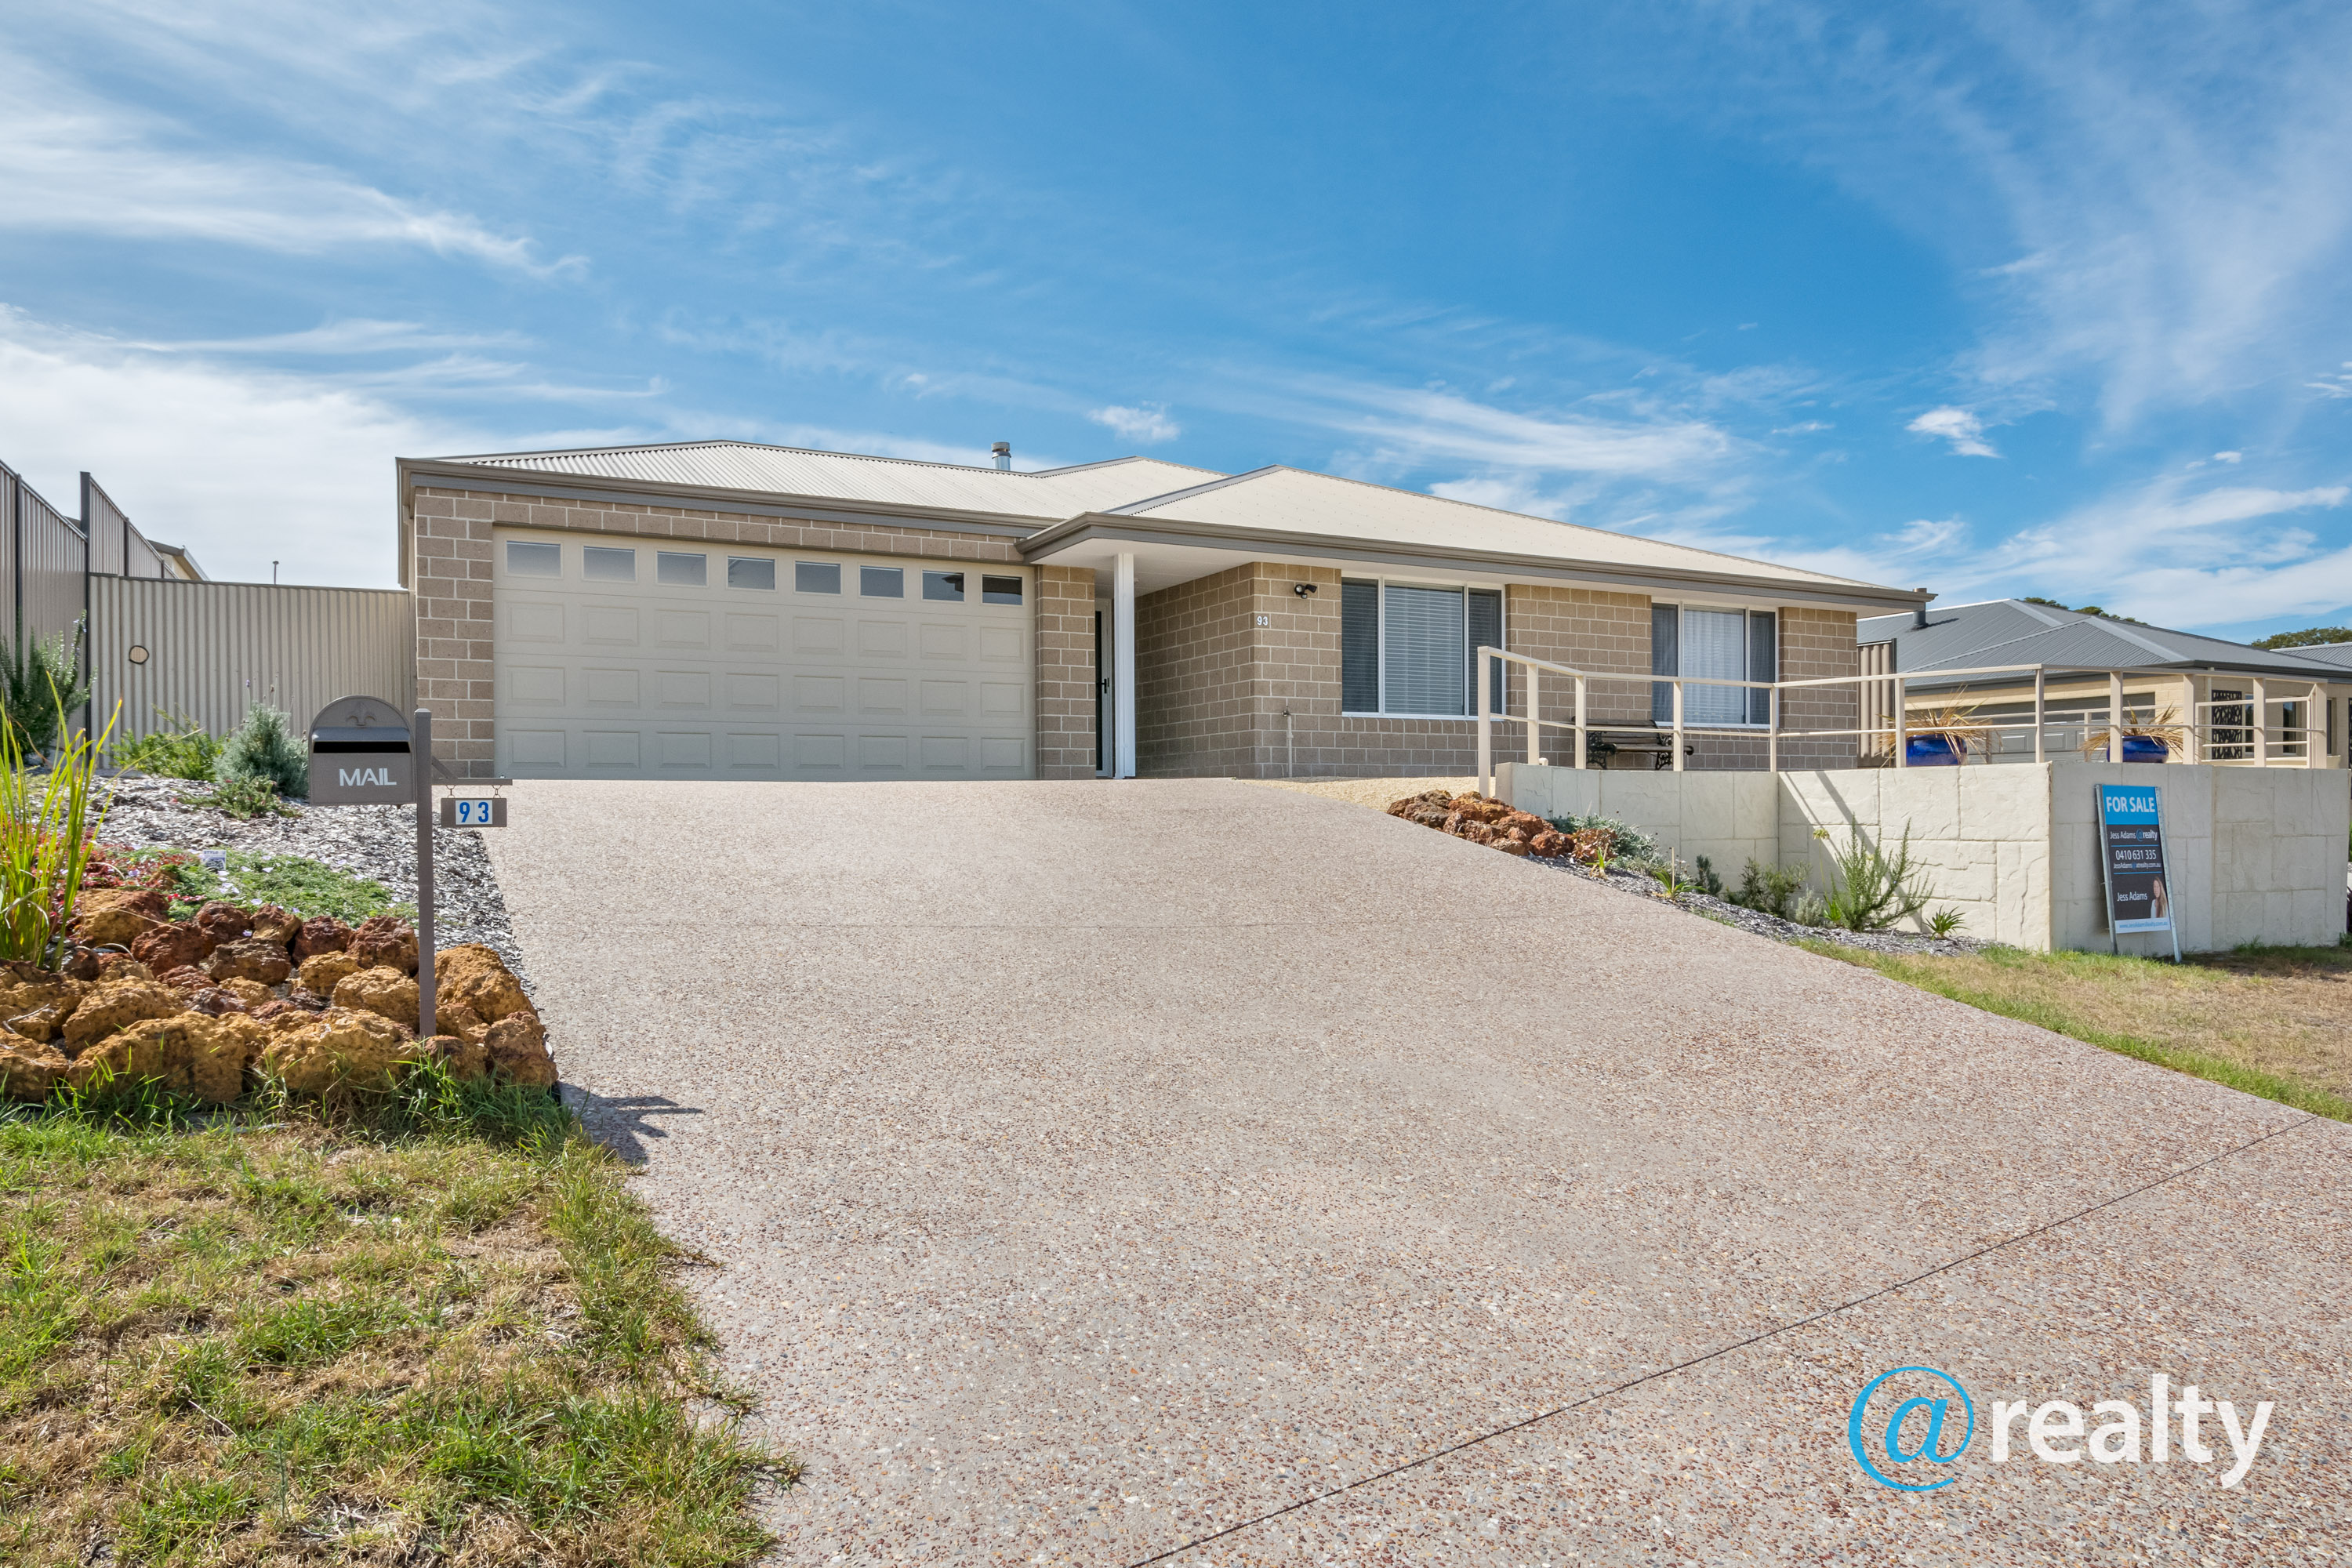 93 Greyhound Circle, Gledhow